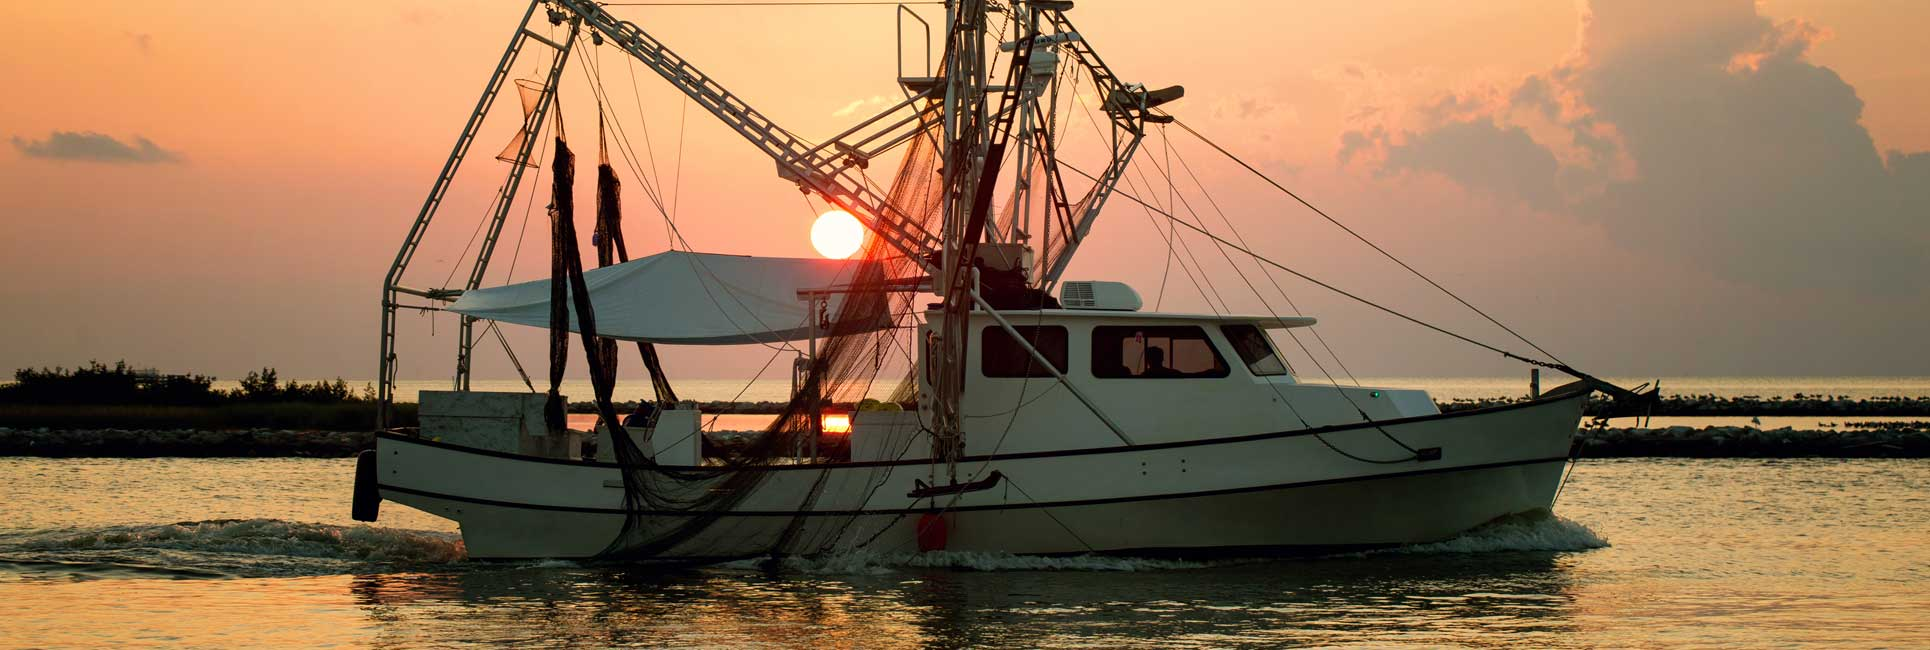 A large fishing boat on the water in front of an orange sunset in Gulf Port, MS